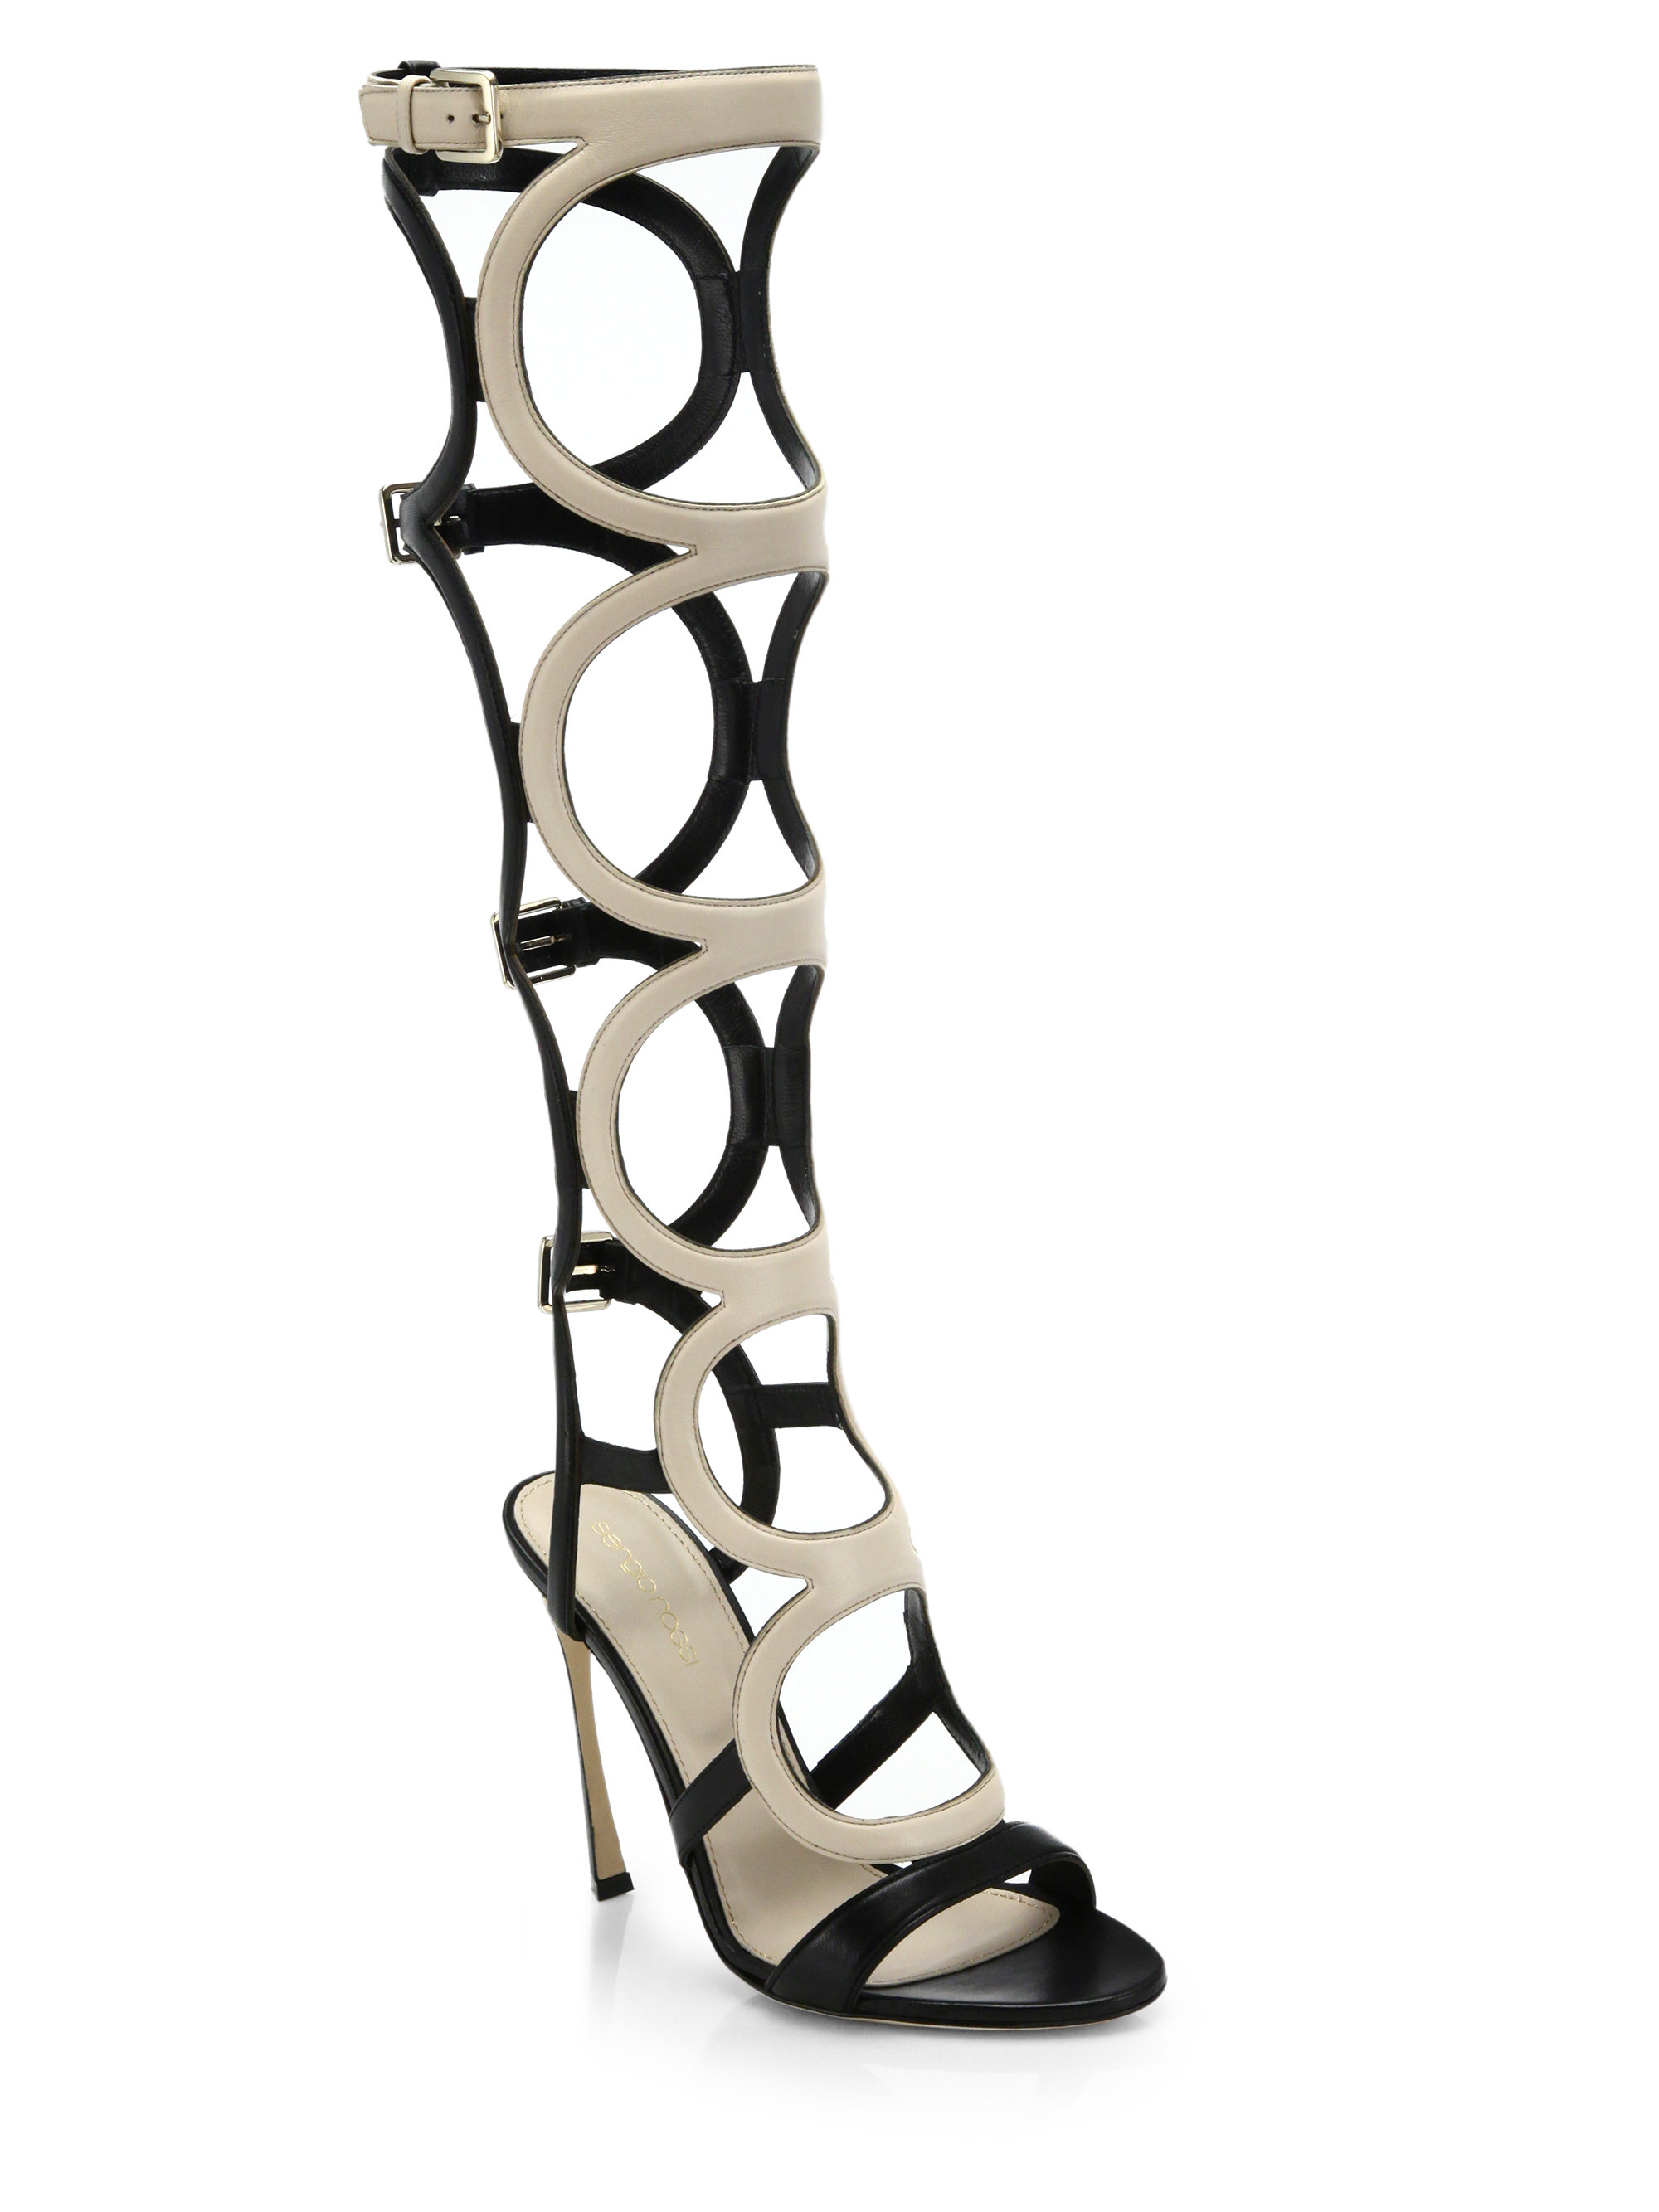 Sandals Leather in Sergio Arabe High Knee Lyst Gladiator Natural Rossi RLS5Acq3j4